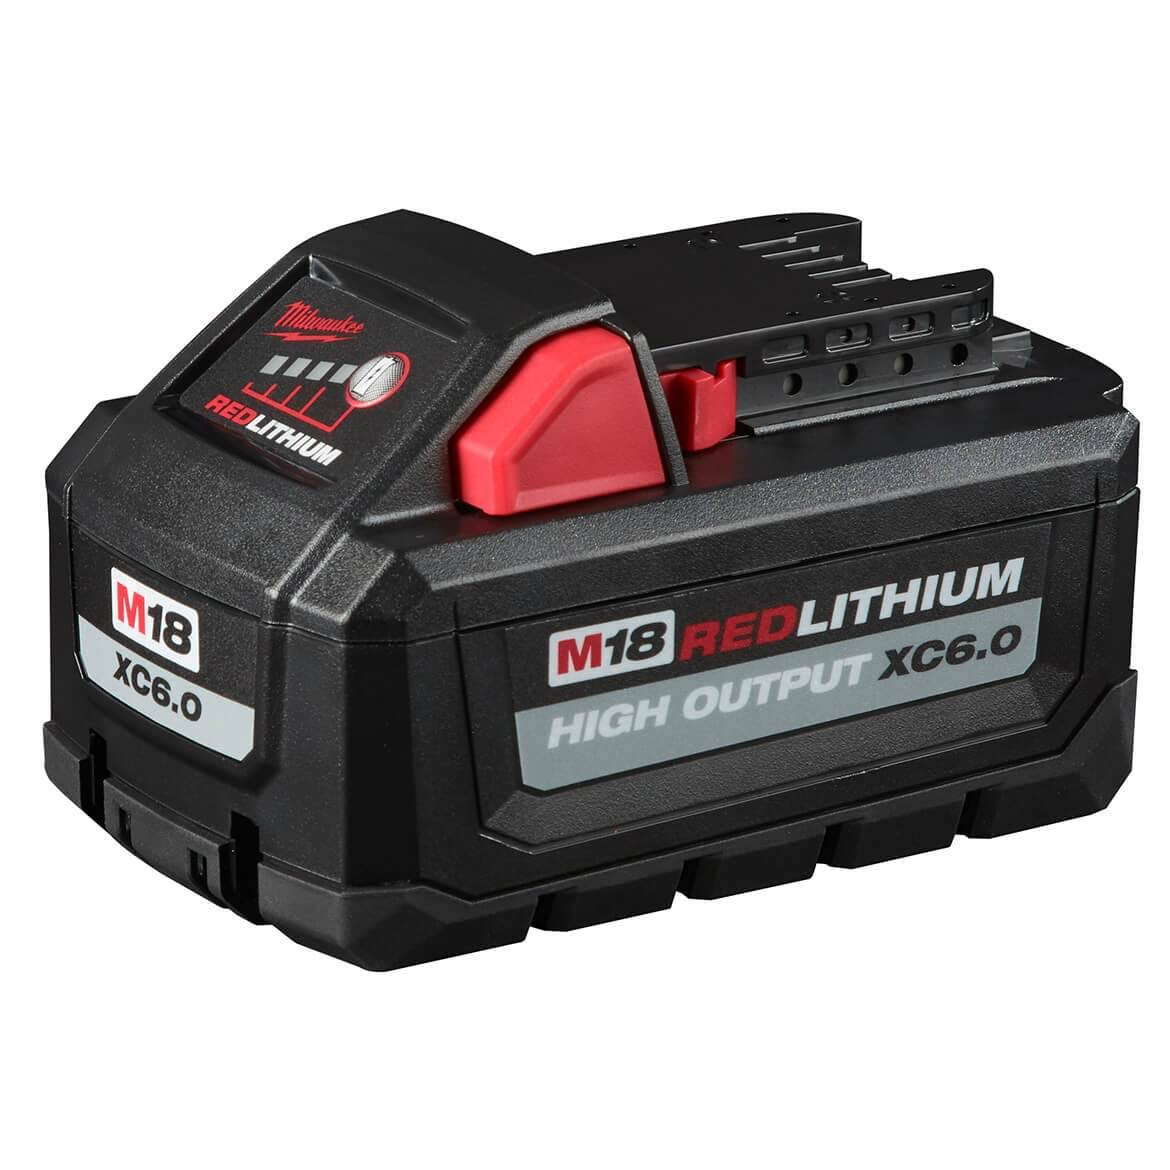 Milwaukee 48-11-1865 M18 Redlithium High Output XC6.0 Battery Pack